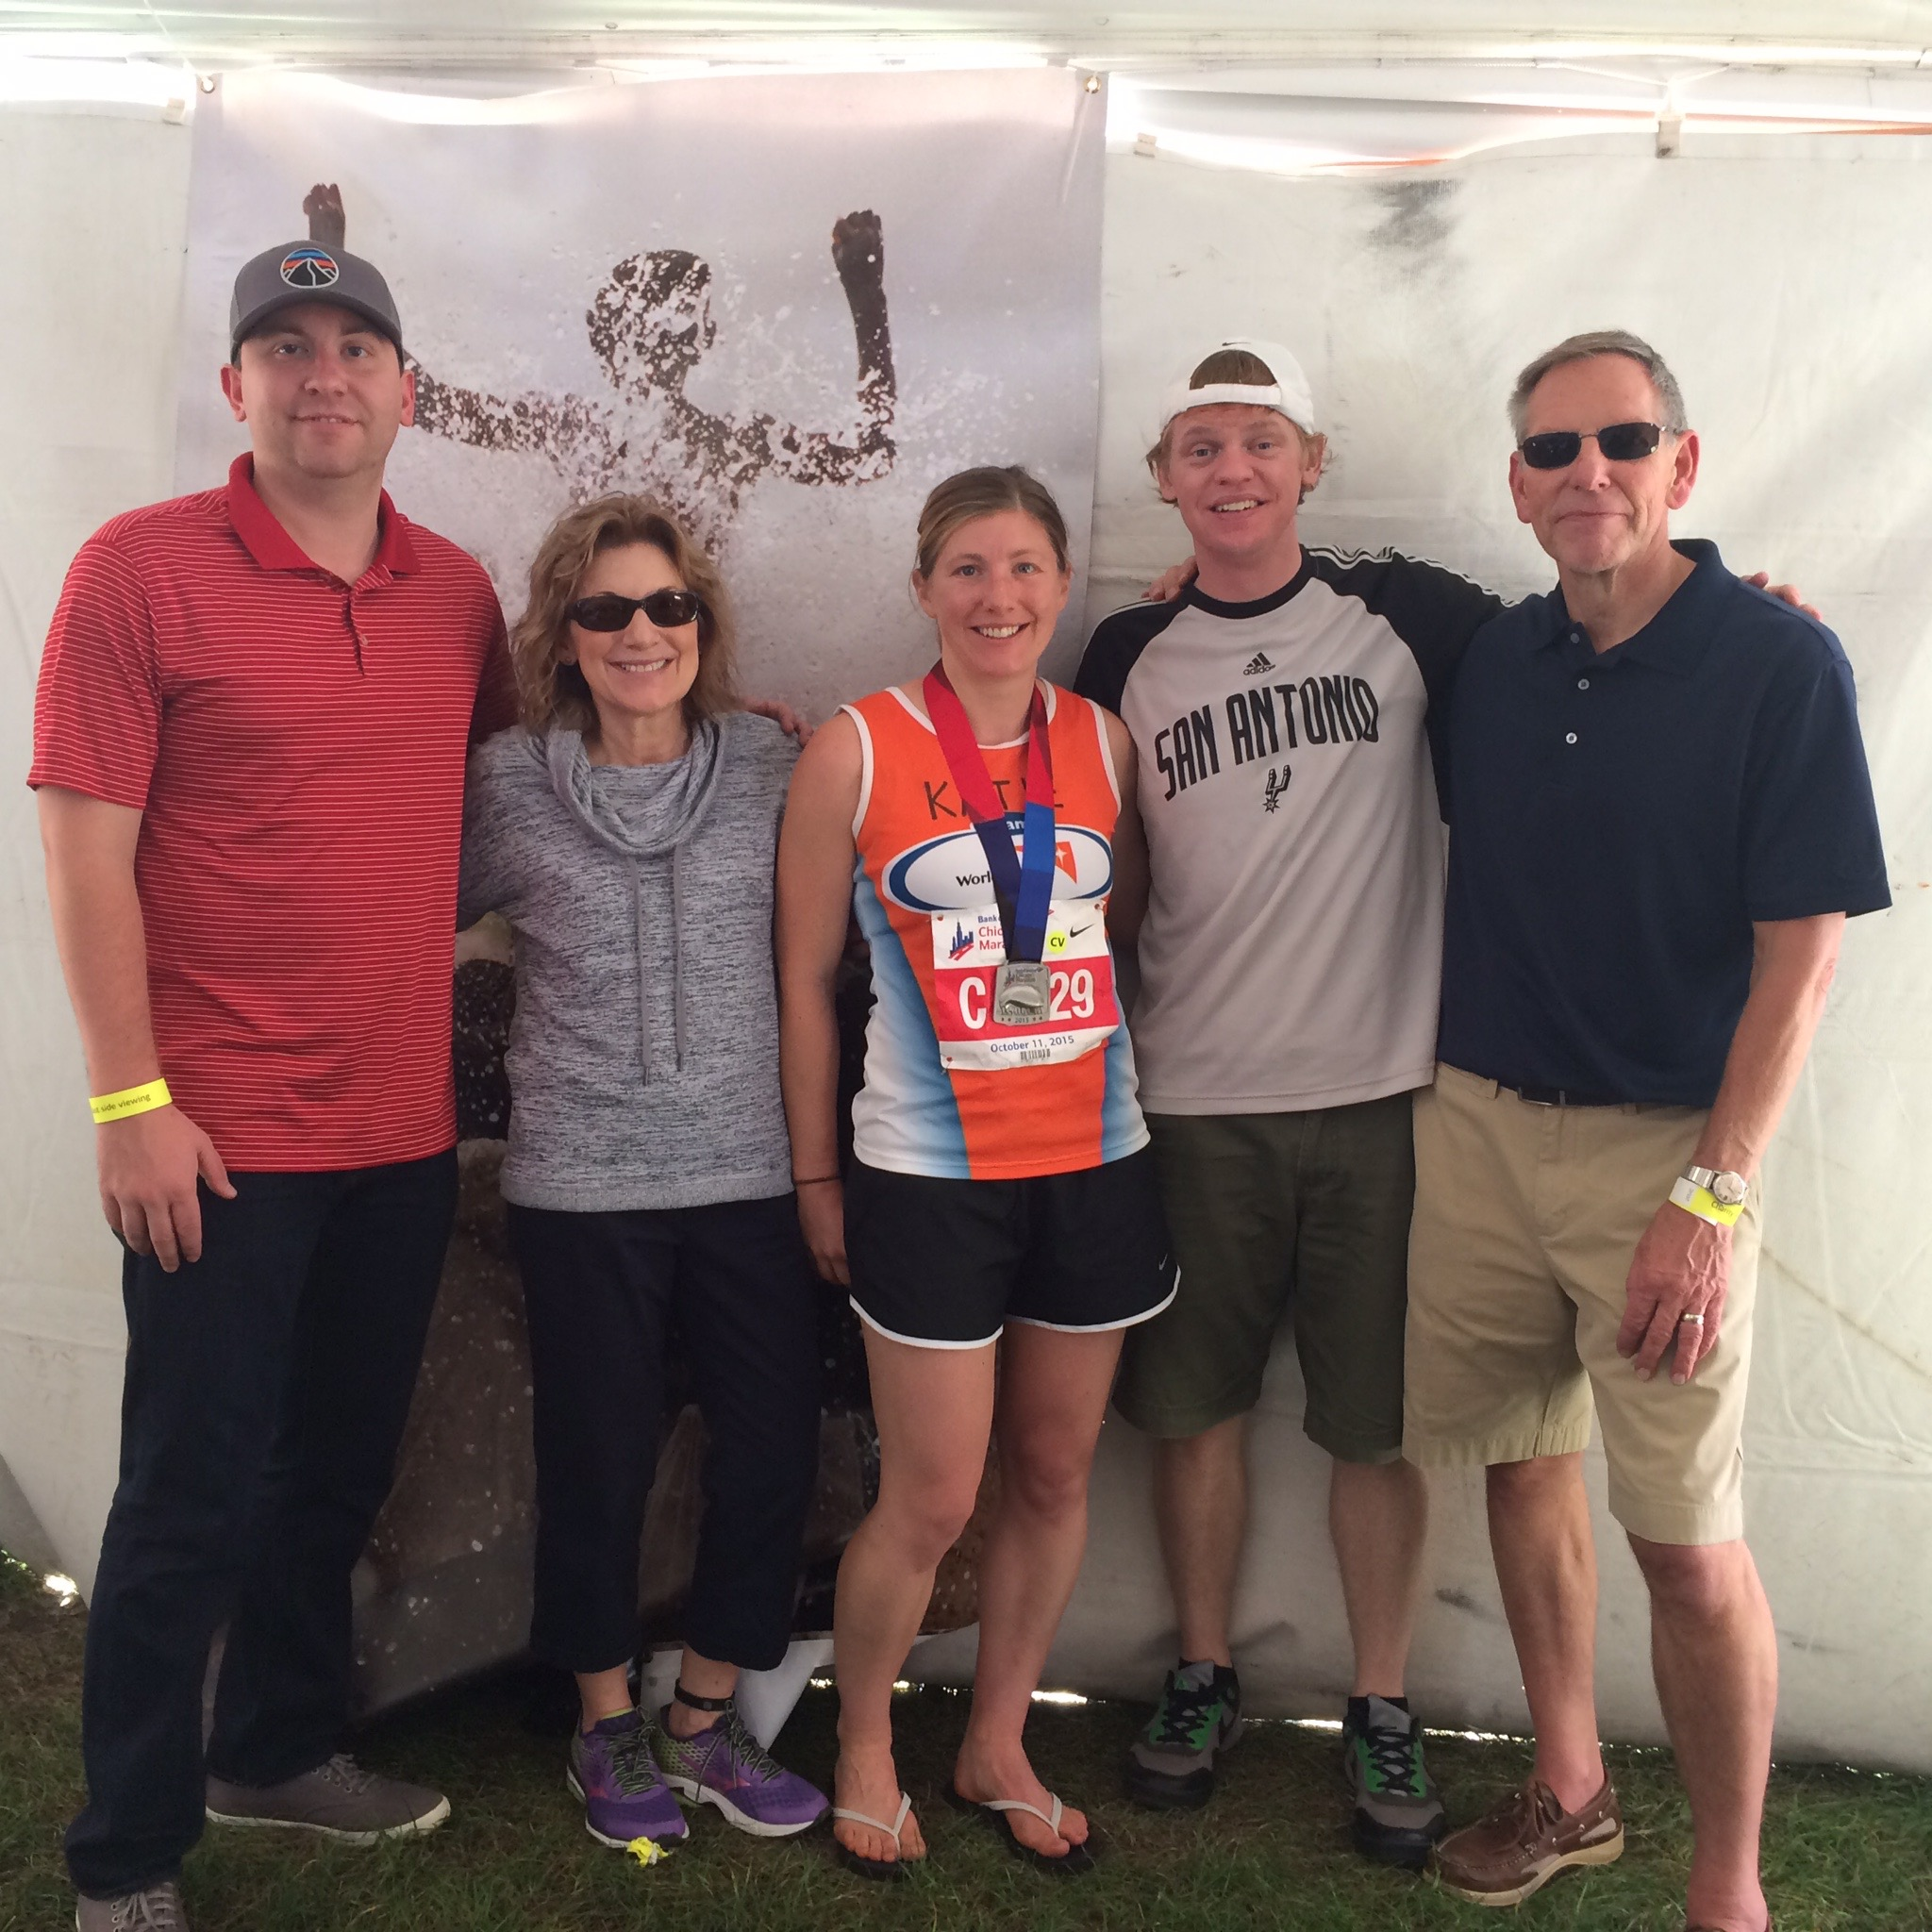 My family and husband joining me after the race. Thank goodness for flip-flops!